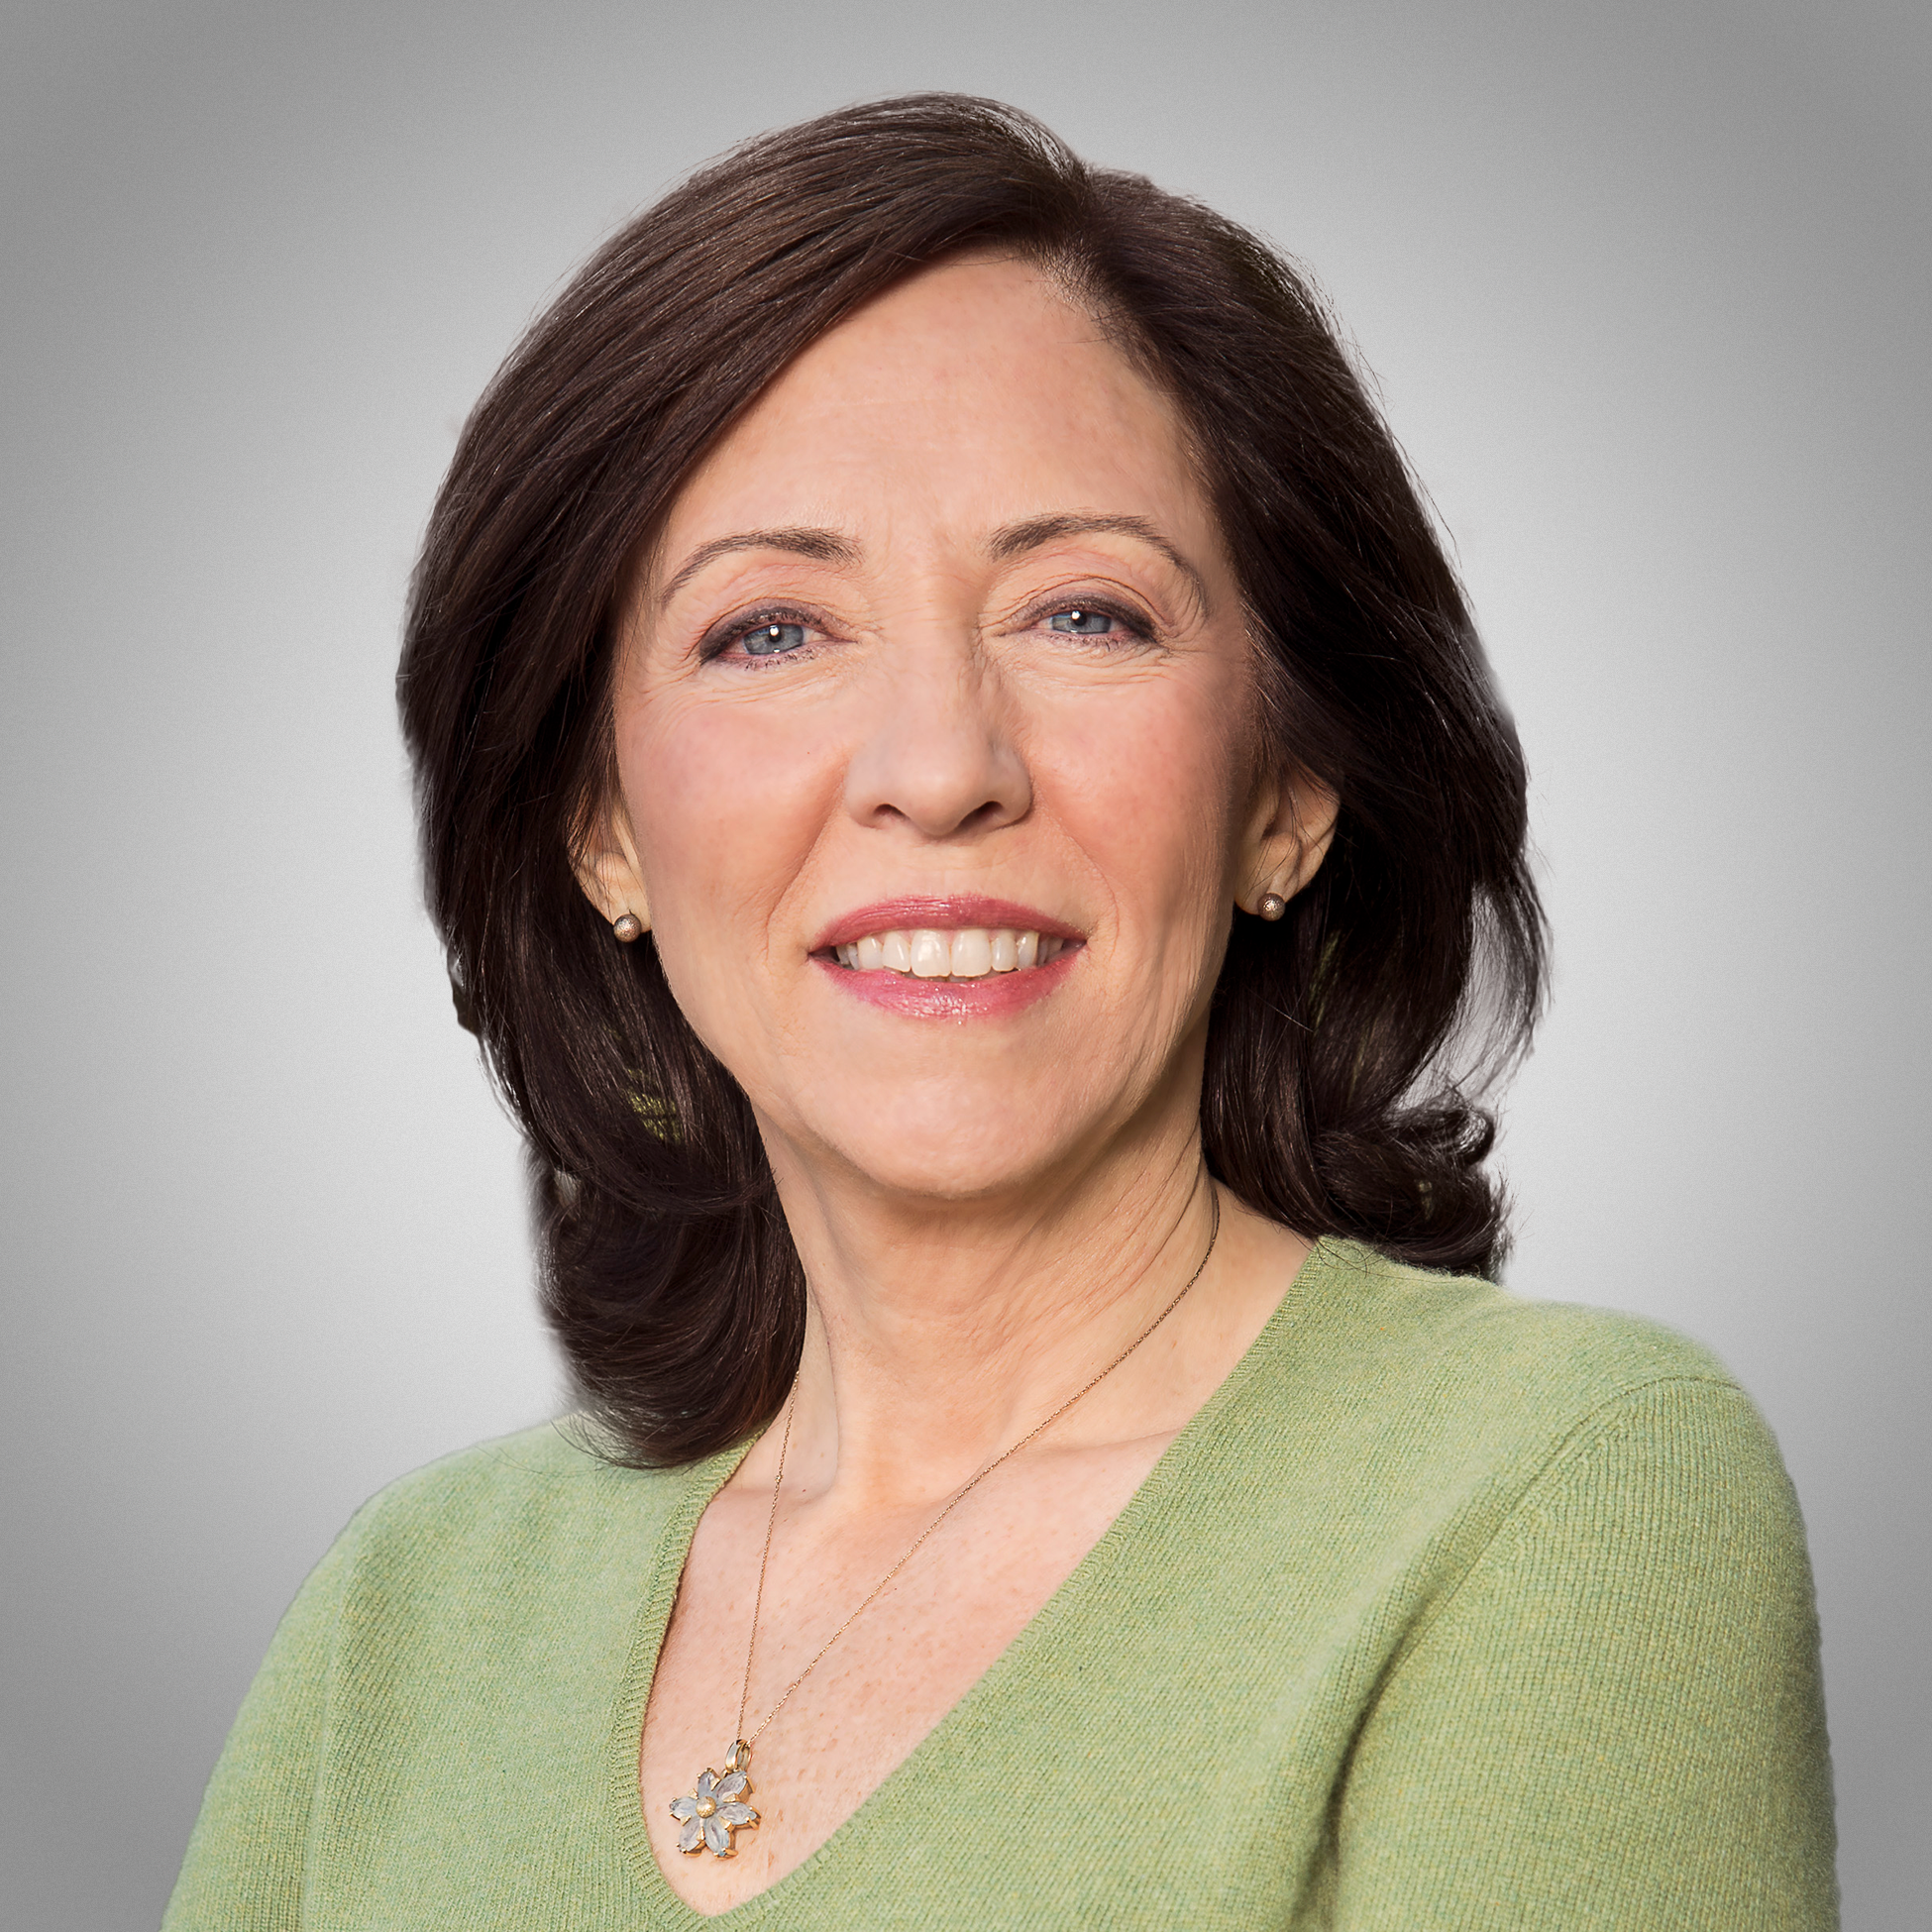 Maria Cantwell